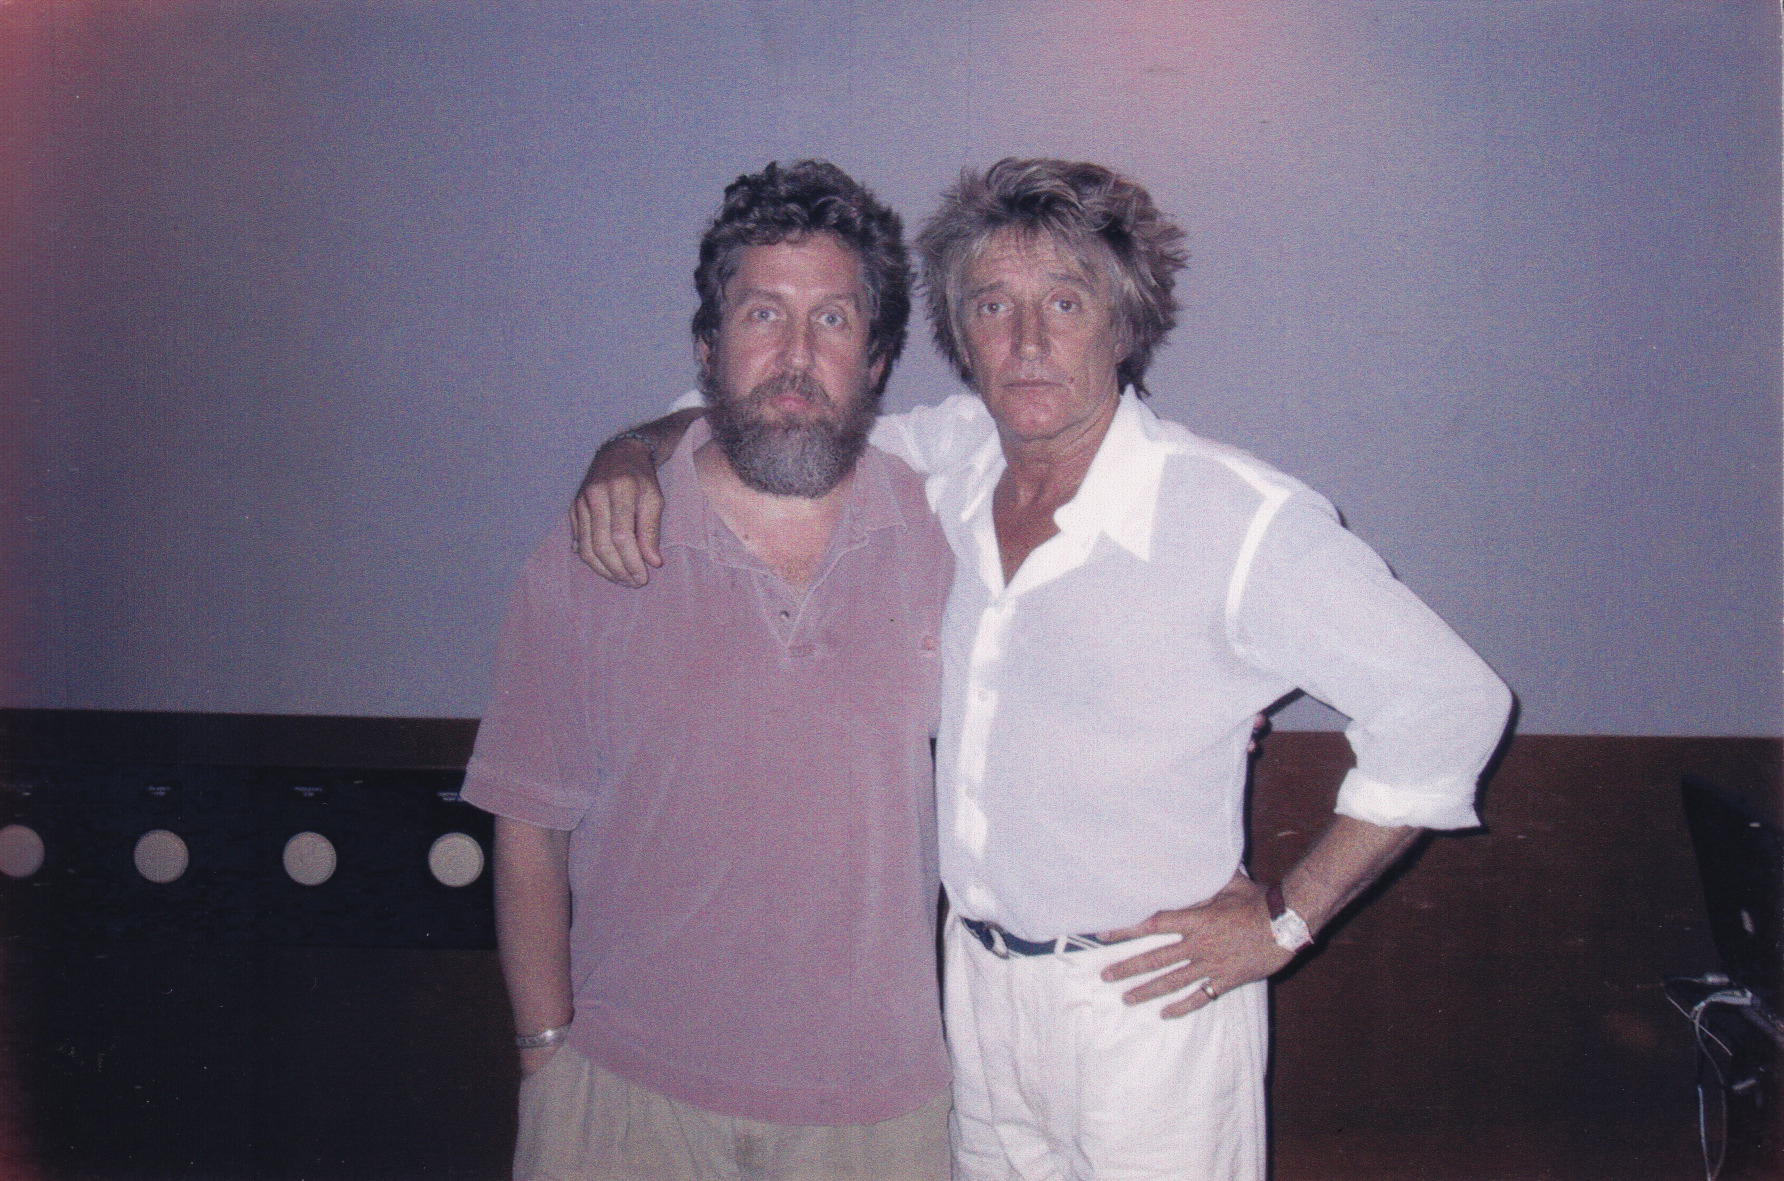 Al Hemberger and Rod Stewart